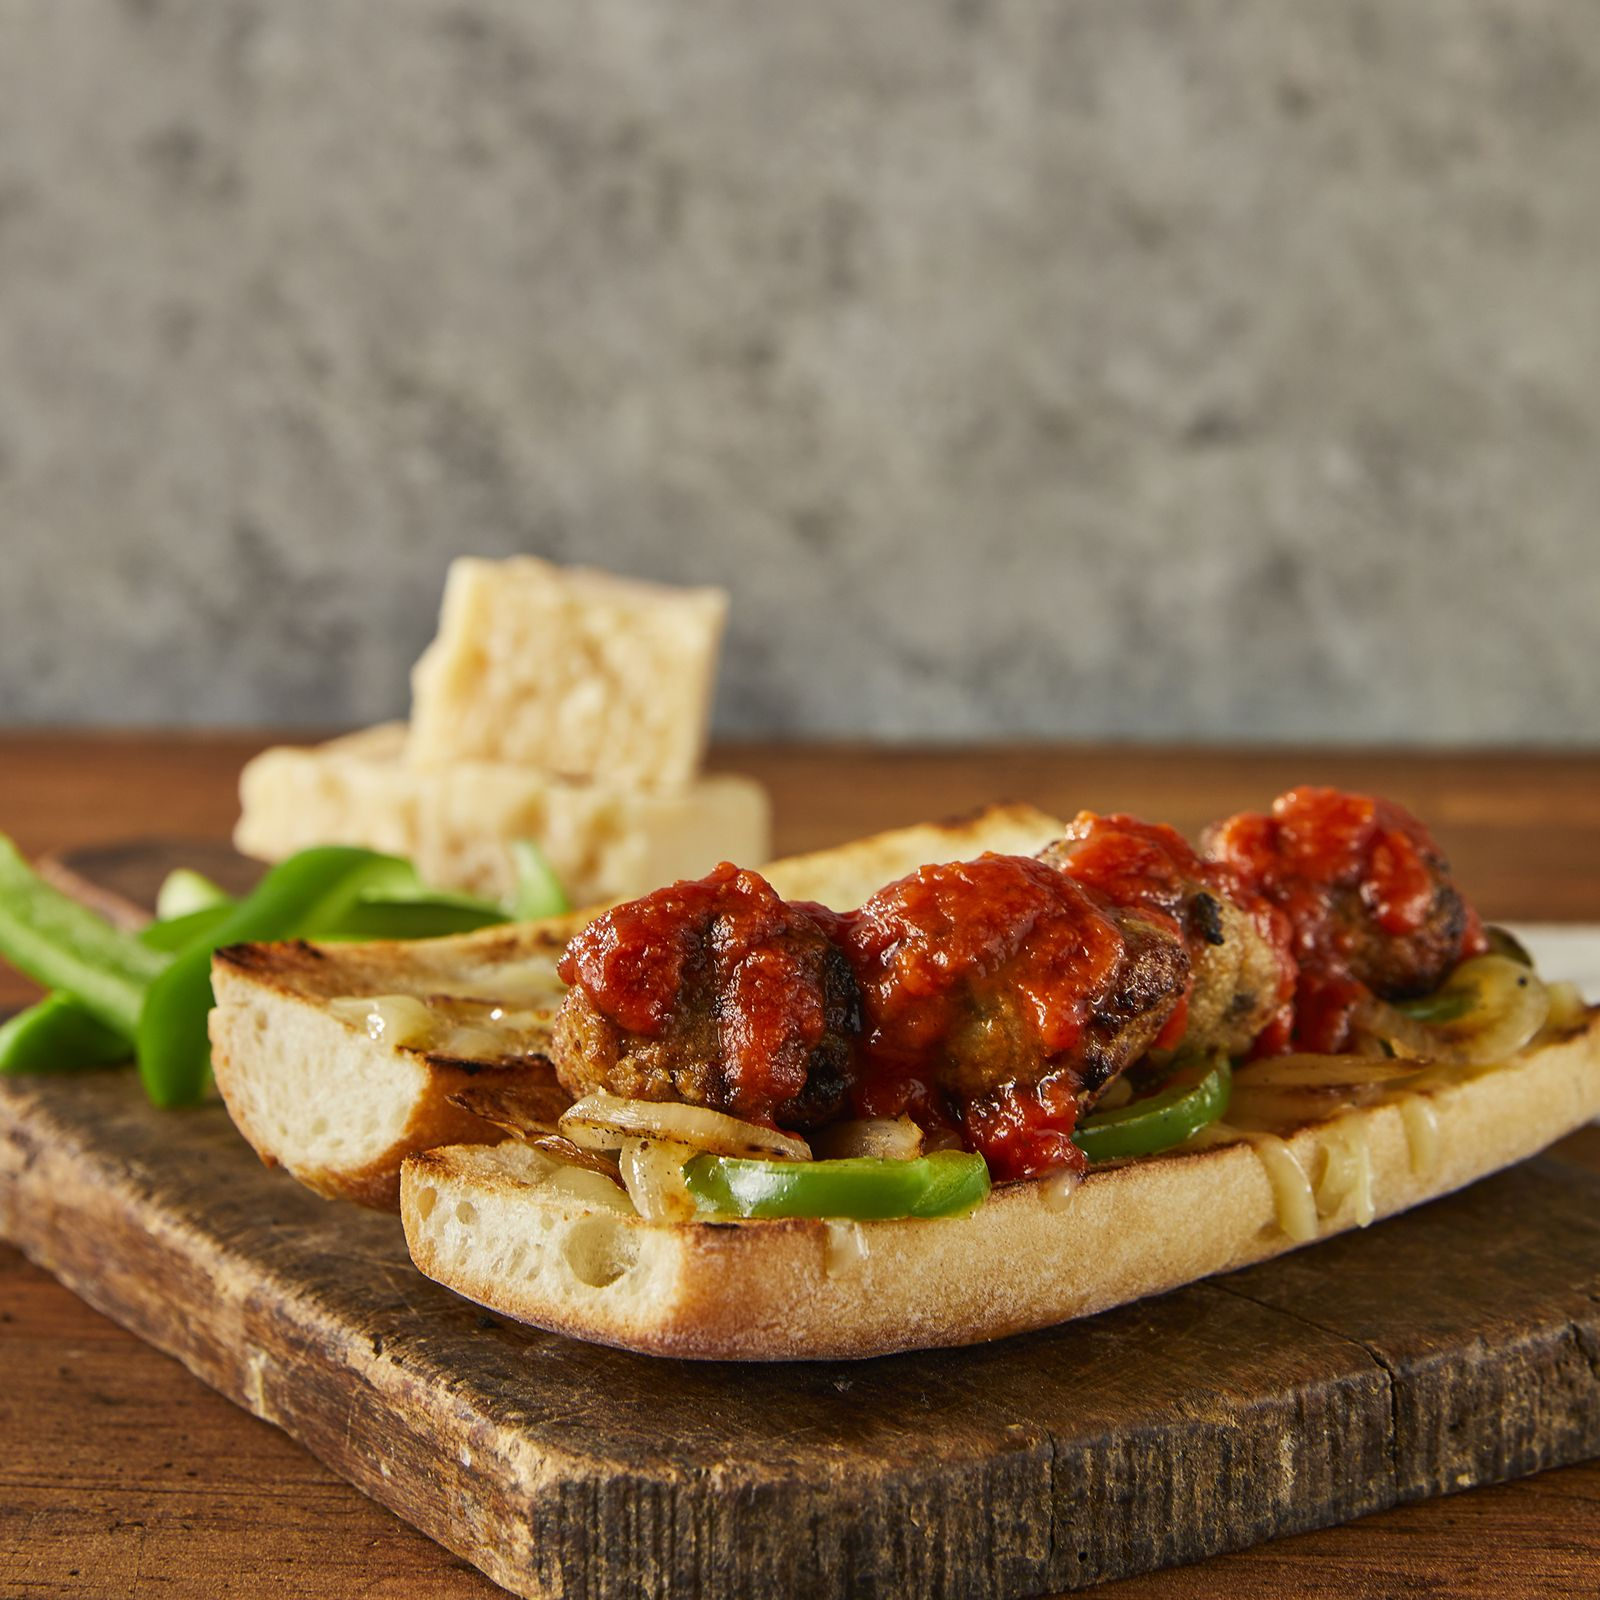 B.GOOD Introduces Eggplant Meatball Sub in Time for Winter Months